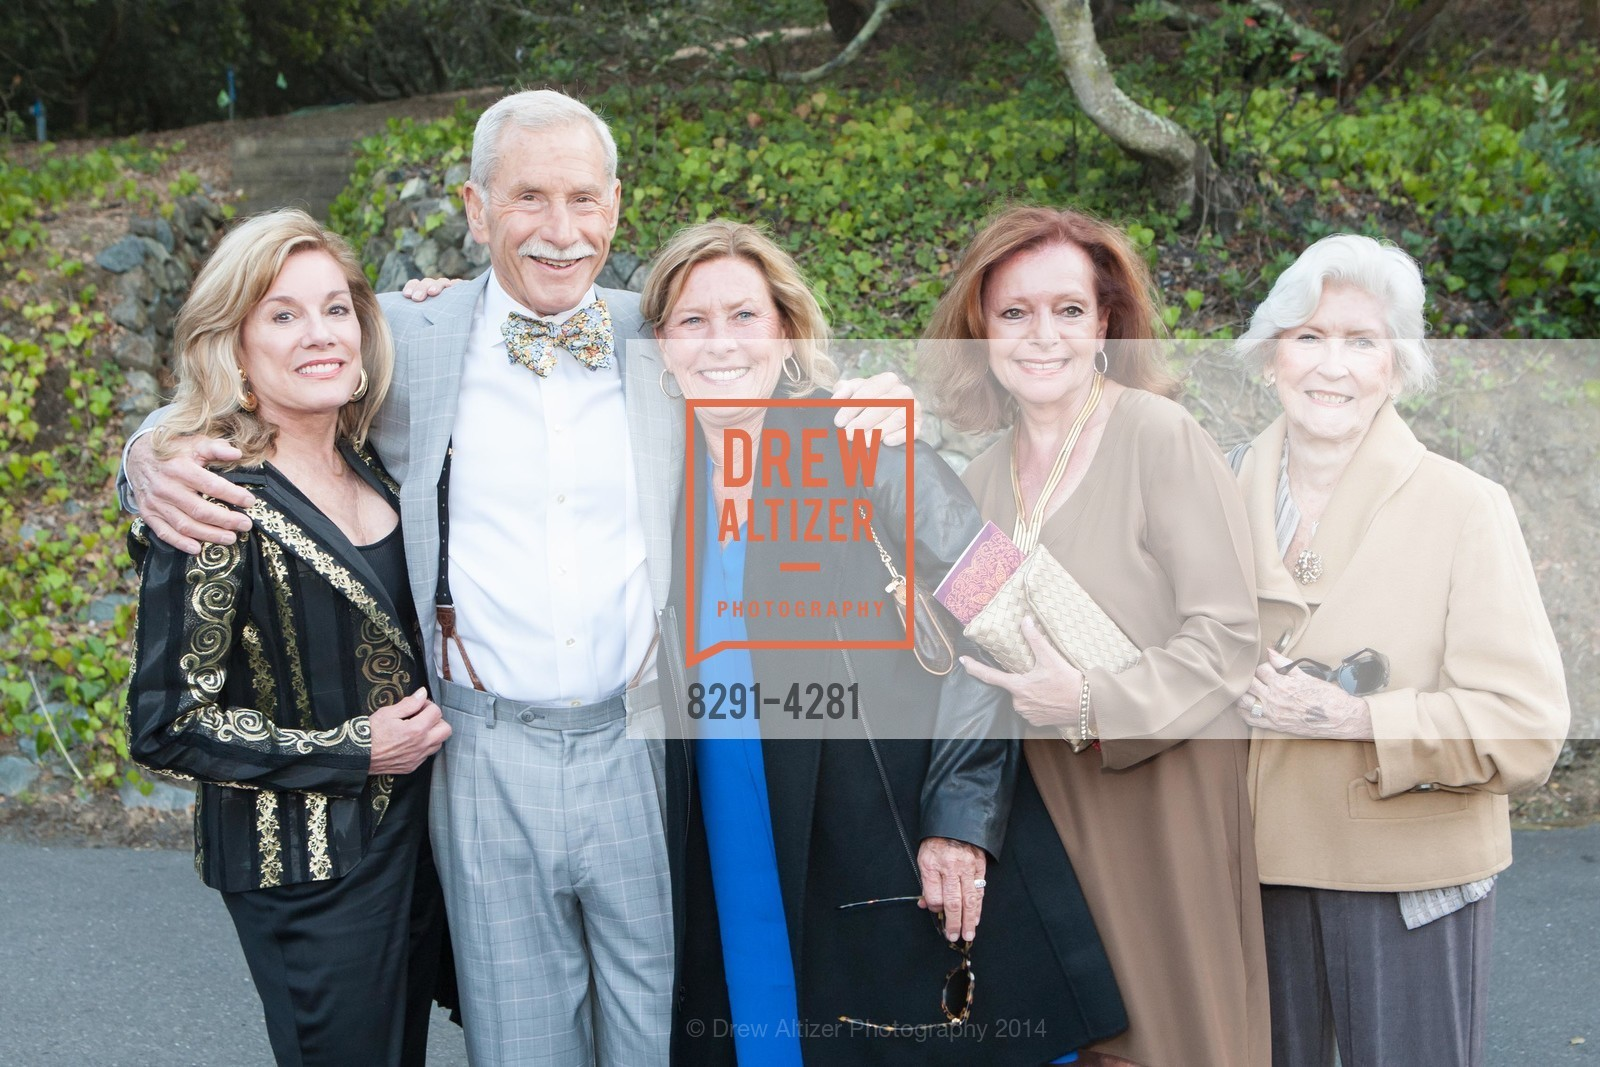 Charlie Geiss, Maxwell Drever, Claudia Crocker, Sandra Paige, Ruth Jaubert, Photo #8291-4281